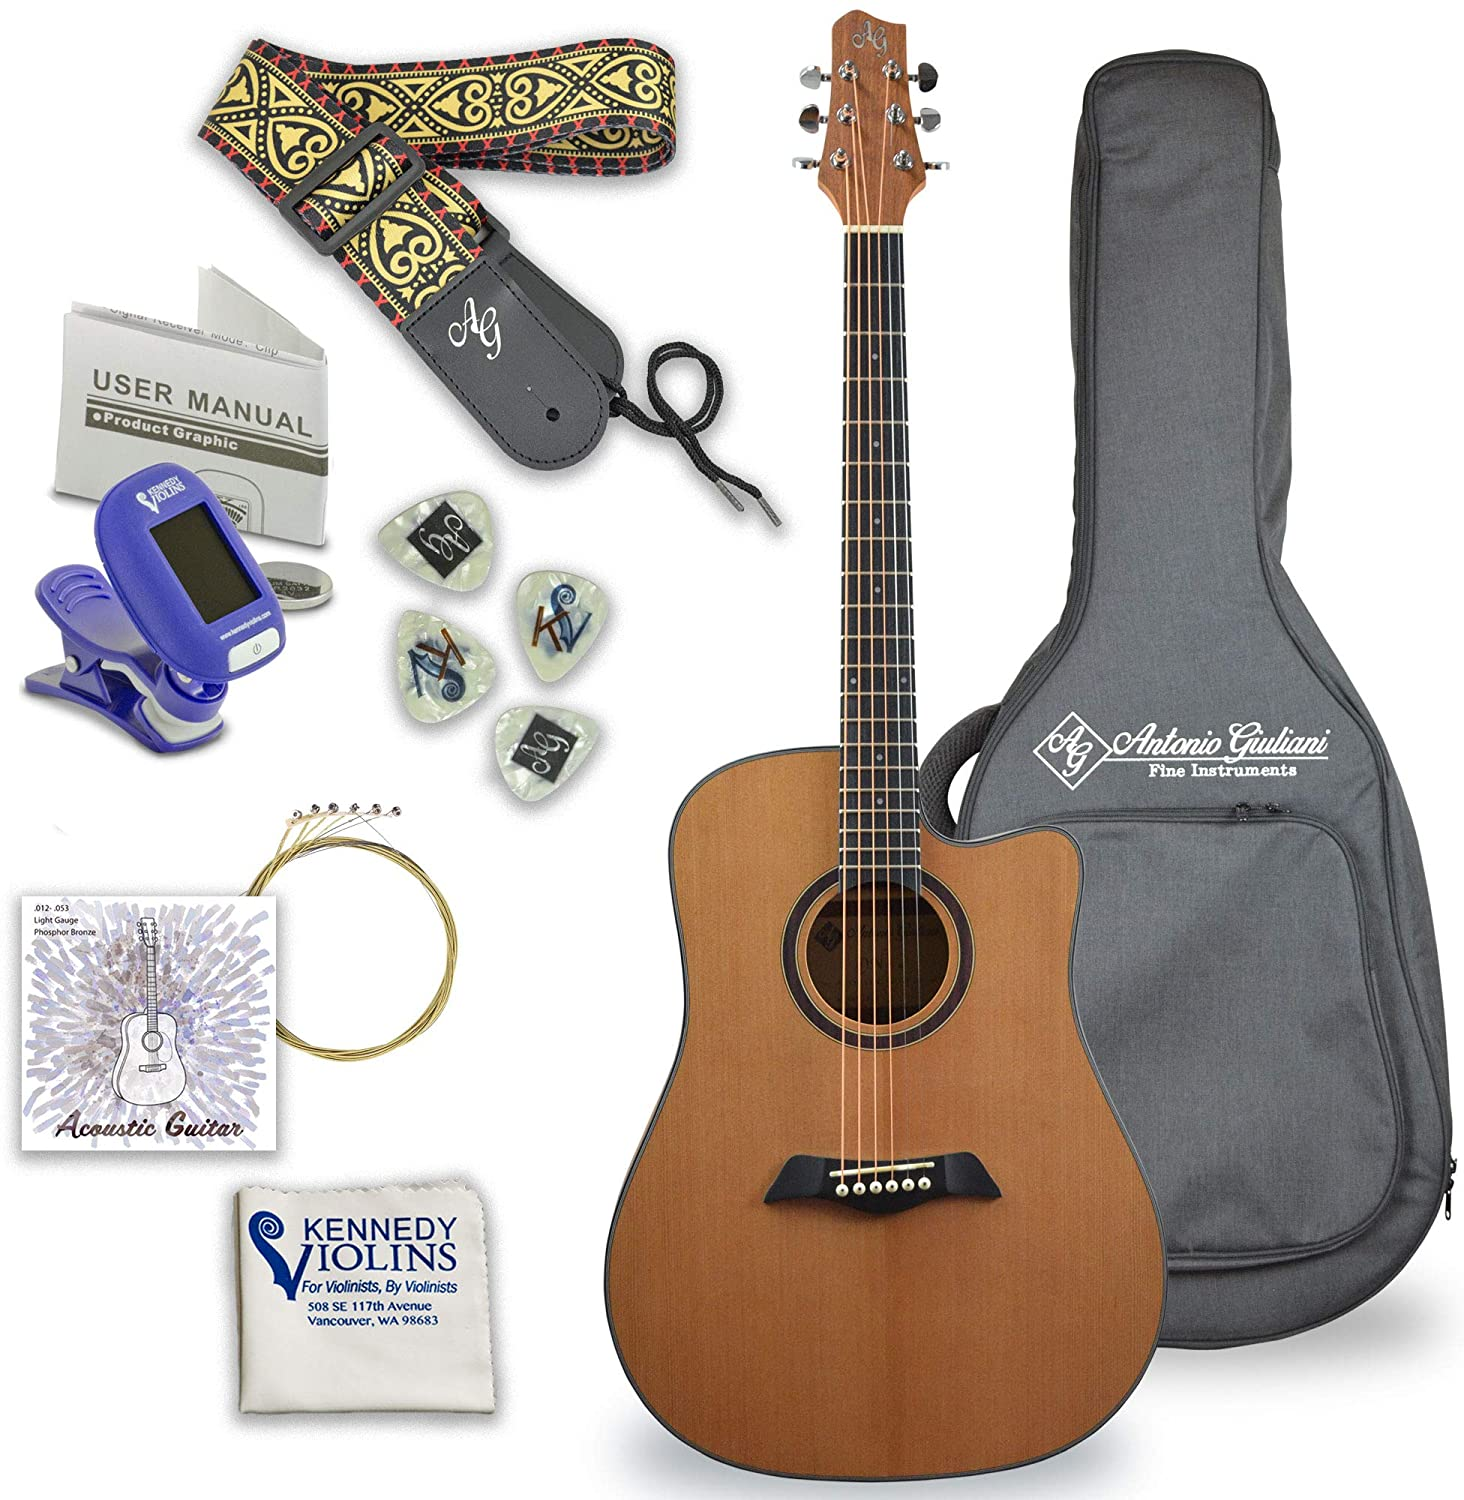 Antonio Giuliani Acoustic Mahogany Guitar Bundle (Clear) (DN-1) - Dreadnought Guitar with Case, Strap, Tuner, Strings and Accessories By Kennedy Violins